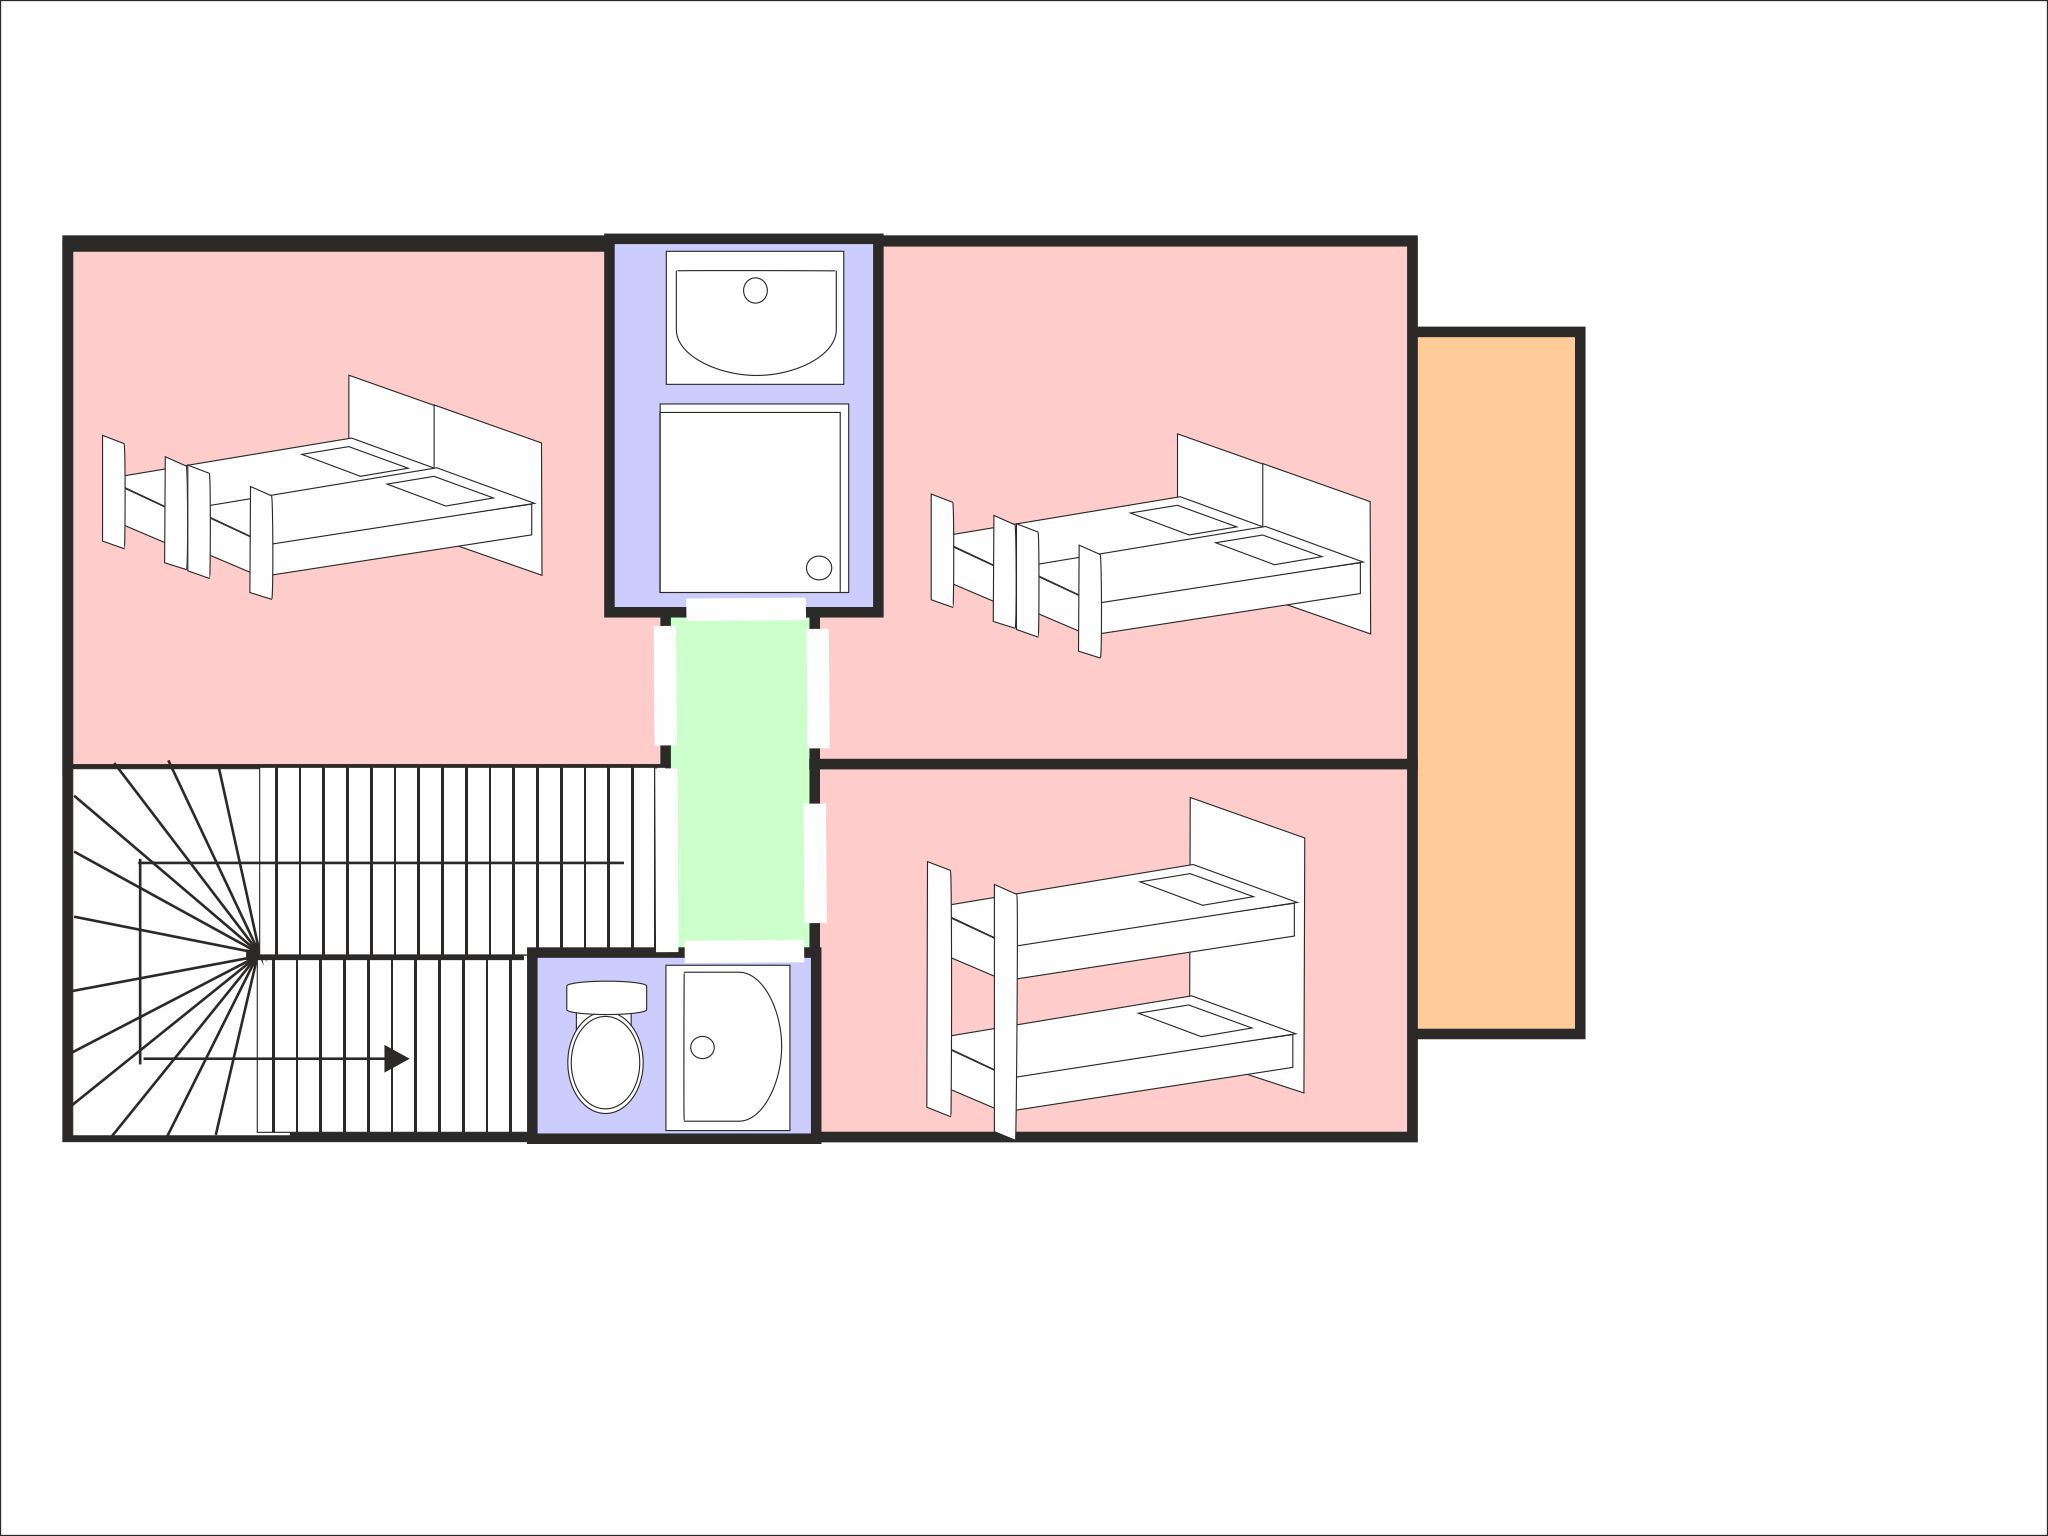 Chalet Sölden Snow Heaven - floor plan - level 2